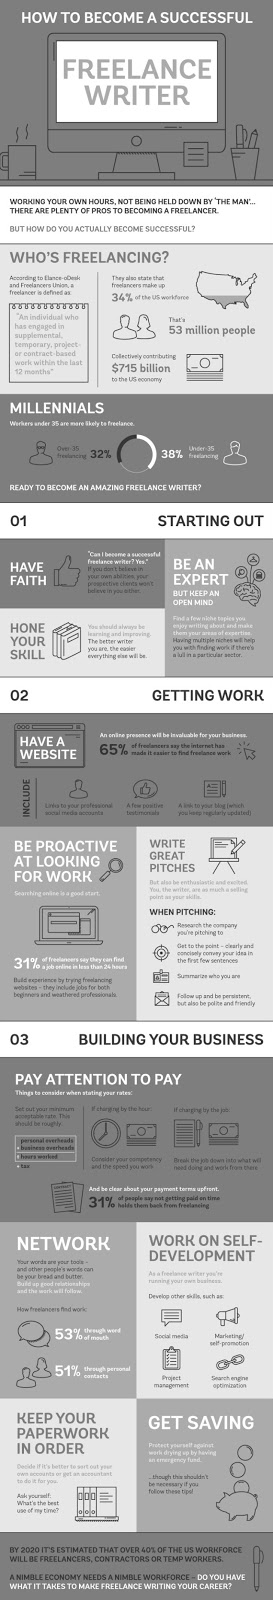 How to Become a Freelacne Writer [infographic]